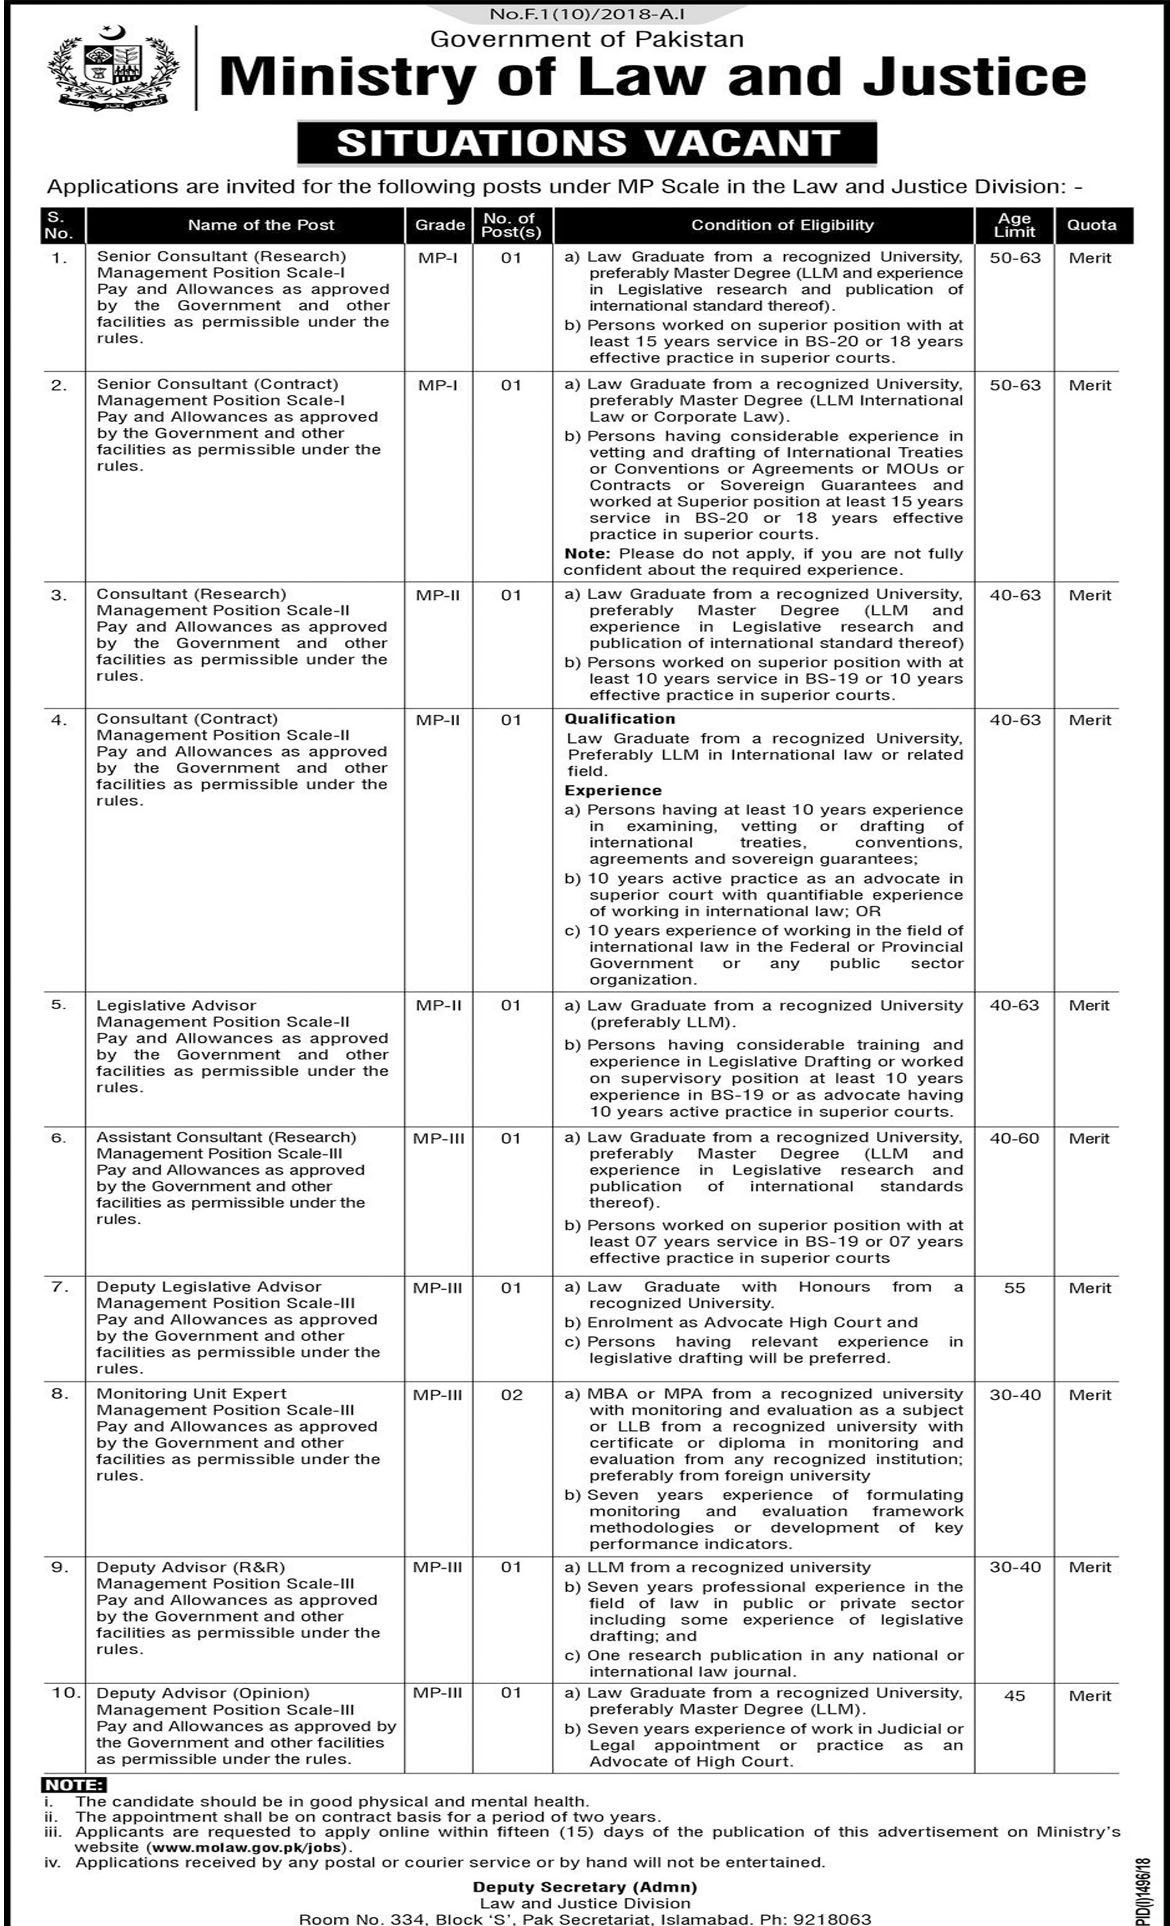 Jobs In Ministry Of Law And Justice Govt Of Pakistan 03 Oct 2018